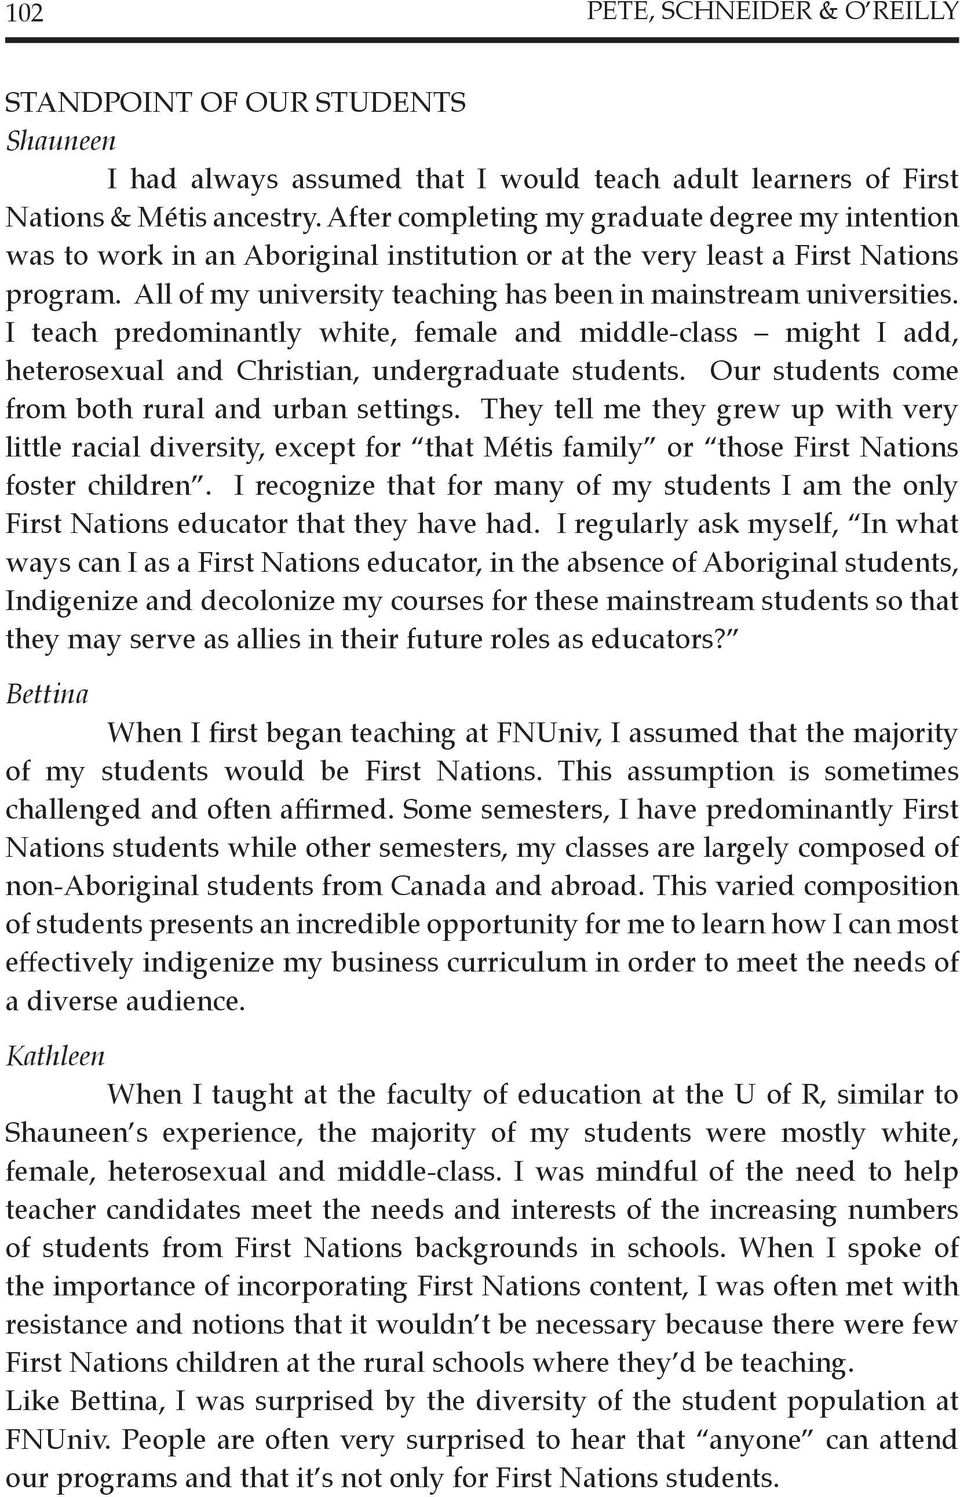 All of my university teaching has been in mainstream universities. I teach predominantly white, female and middle-class might I add, heterosexual and Christian, undergraduate students.